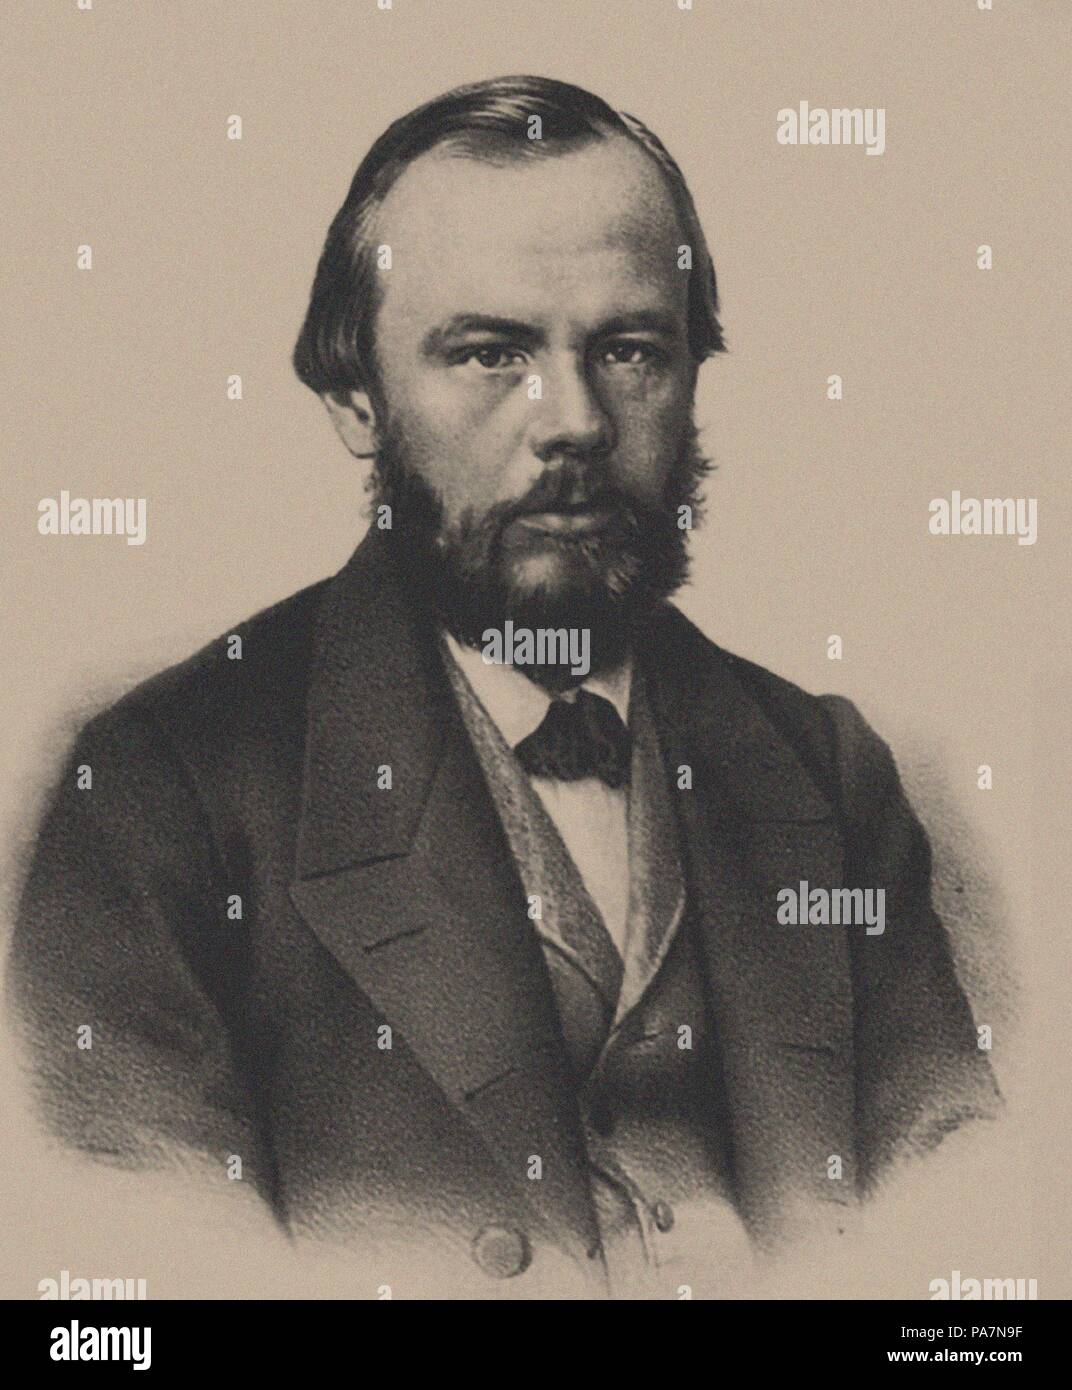 Portrait of the author Fyodor Mikhaylovich Dostoyevsky (1821-1881). Museum: State Museum of Literature, Omsk. - Stock Image